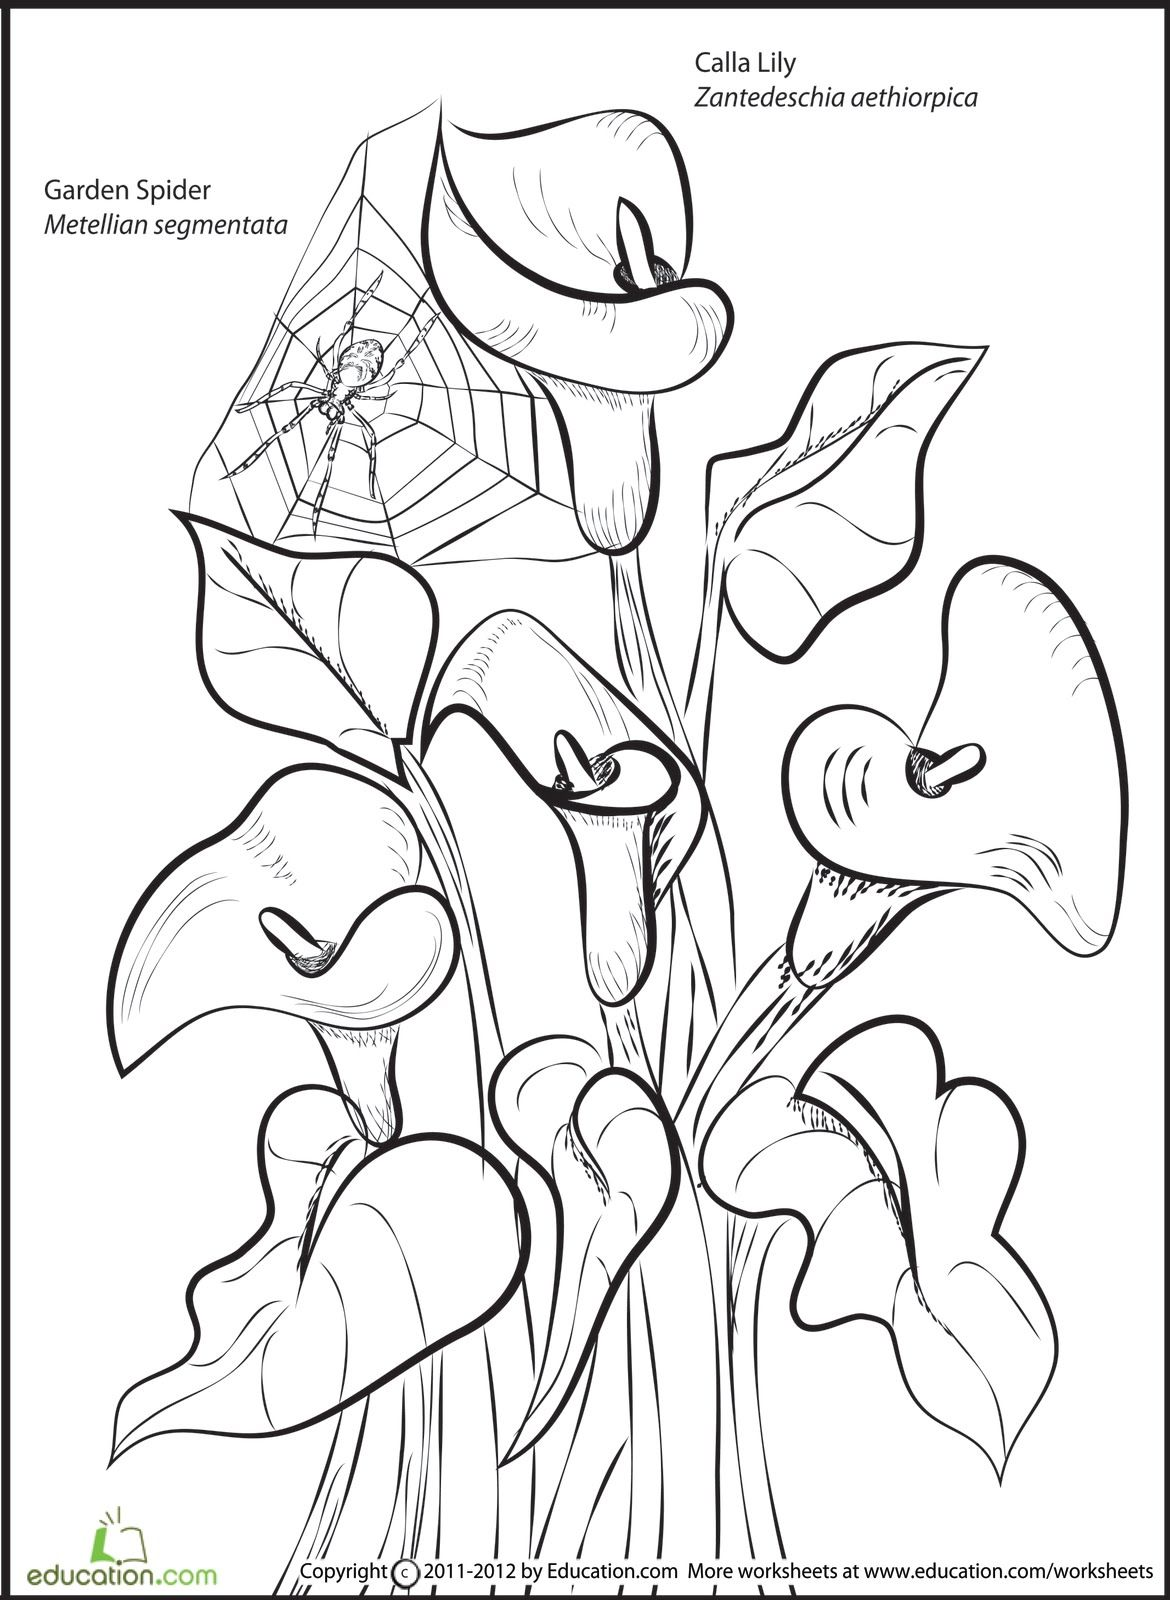 Calla Lily Coloring Pages At Getcolorings